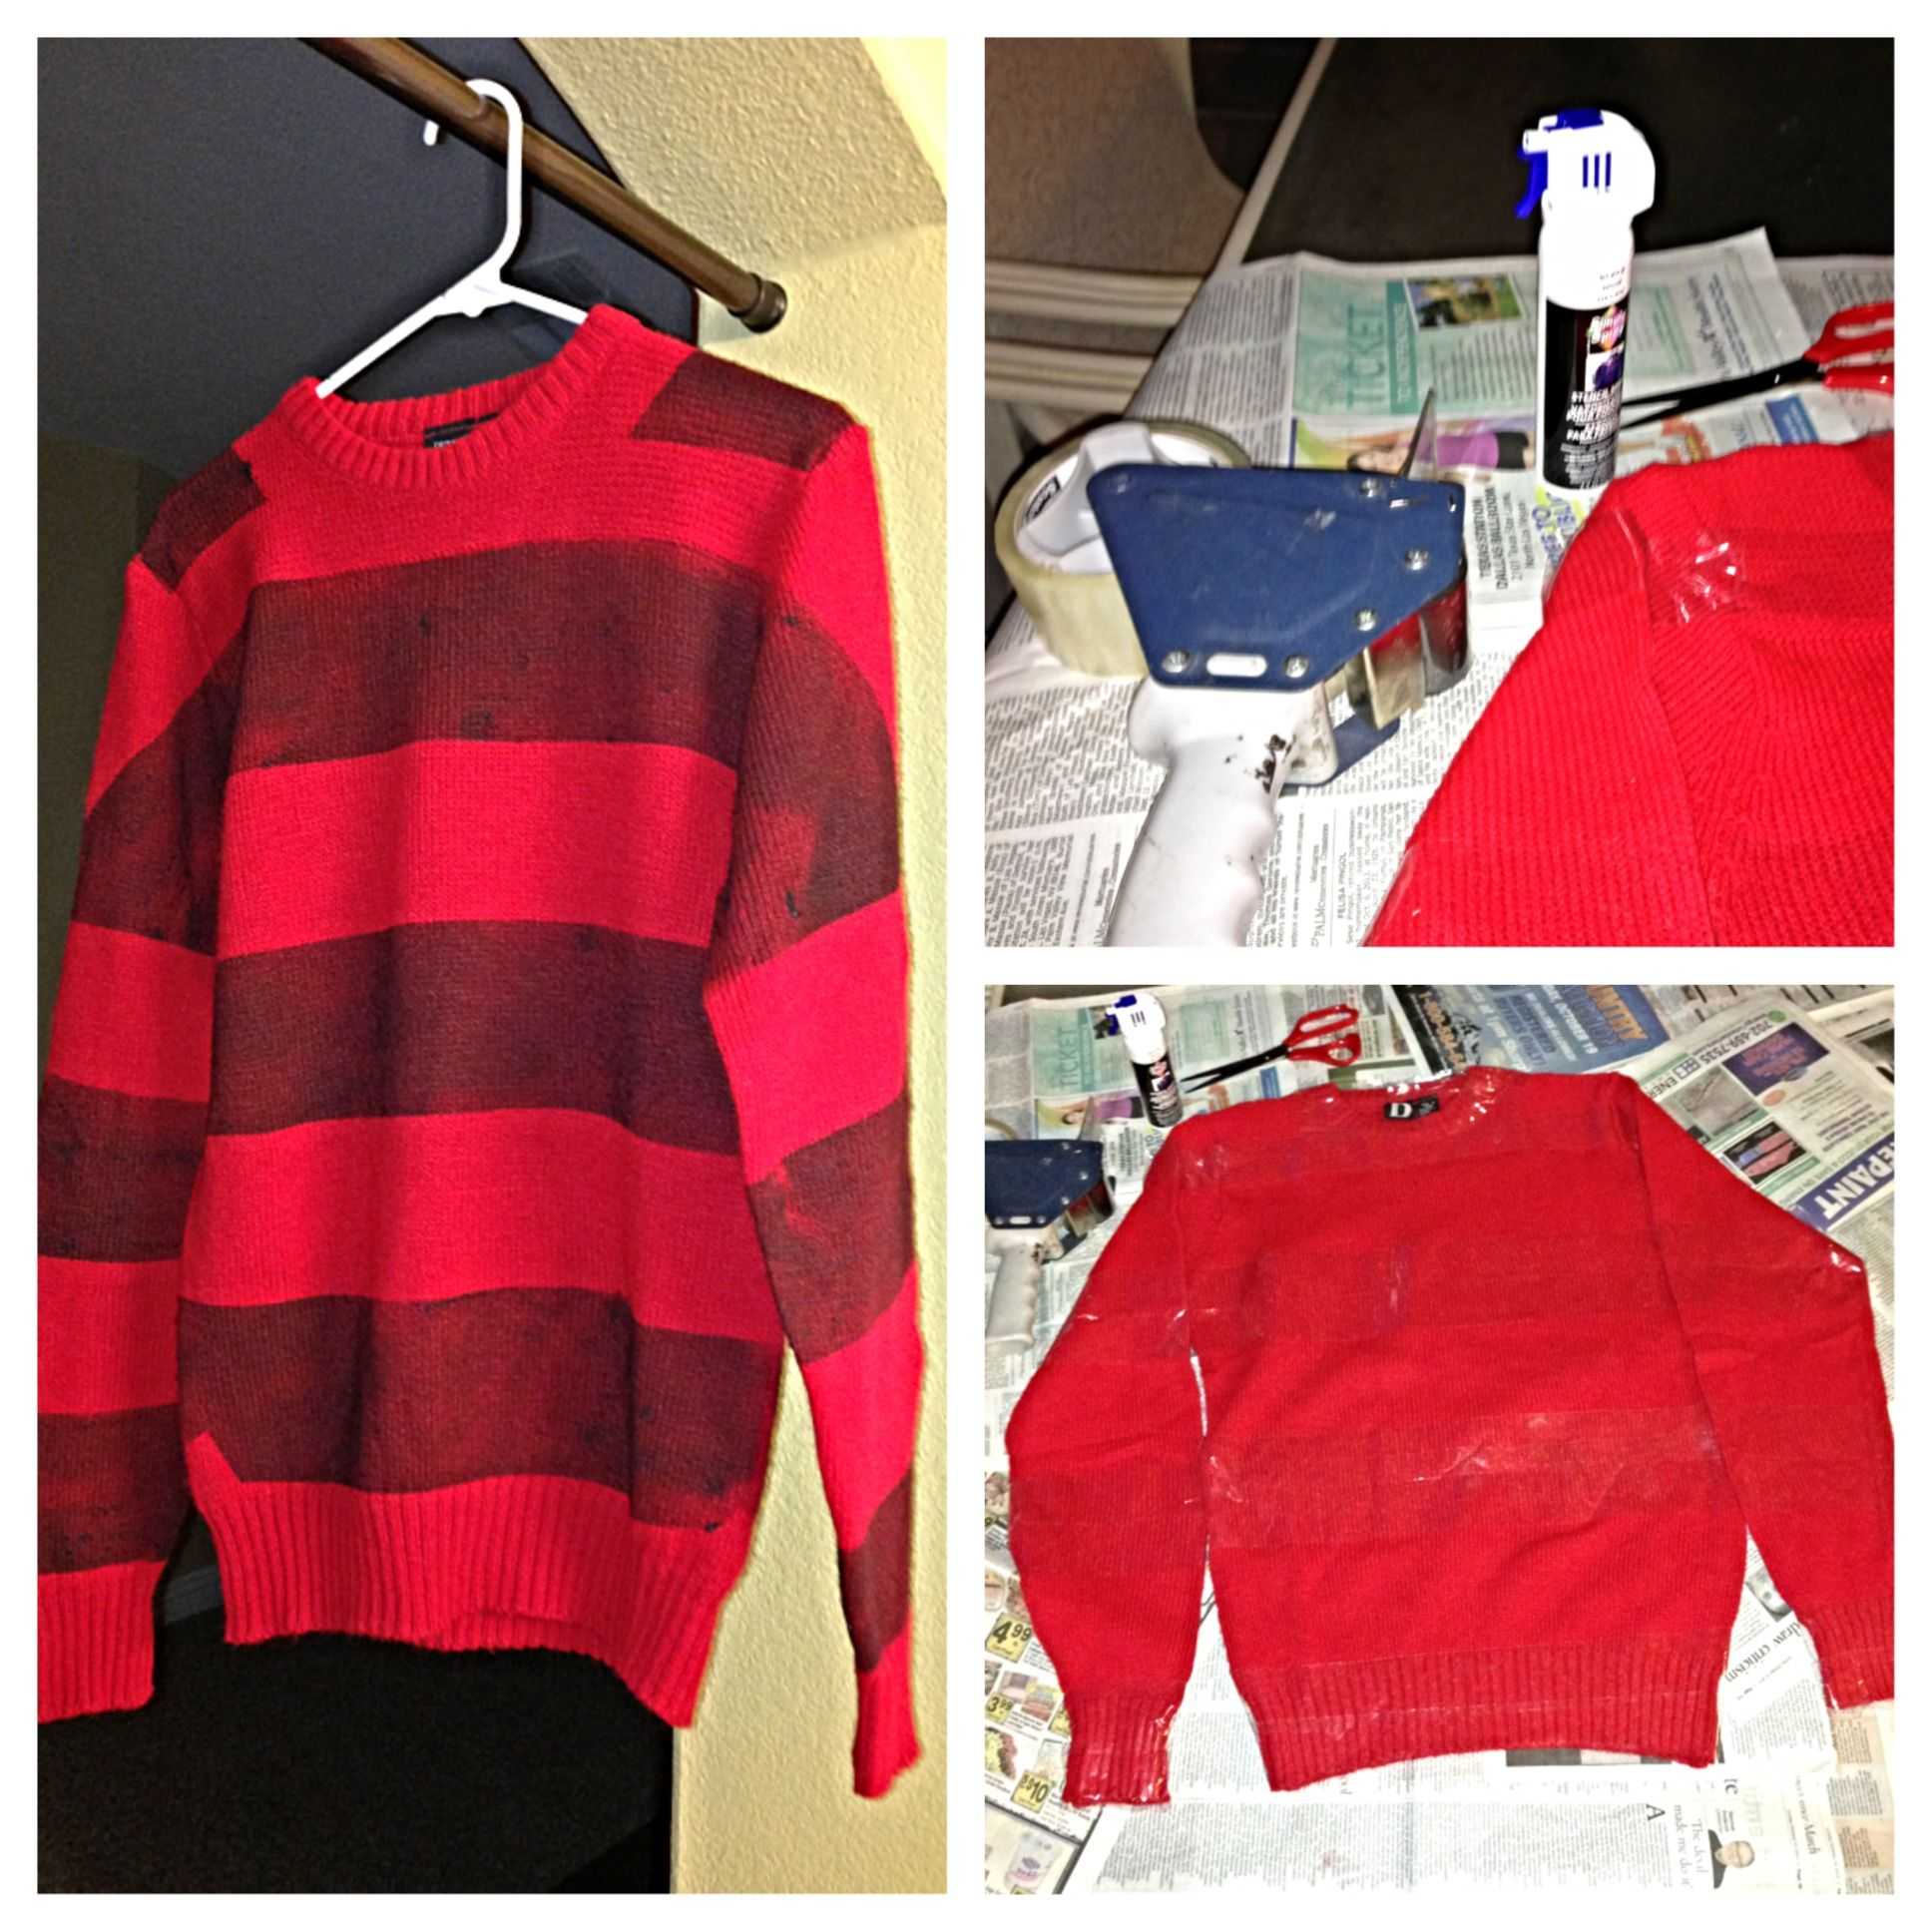 diy freddy krueger sweater - Freddy Krueger Halloween Decorations